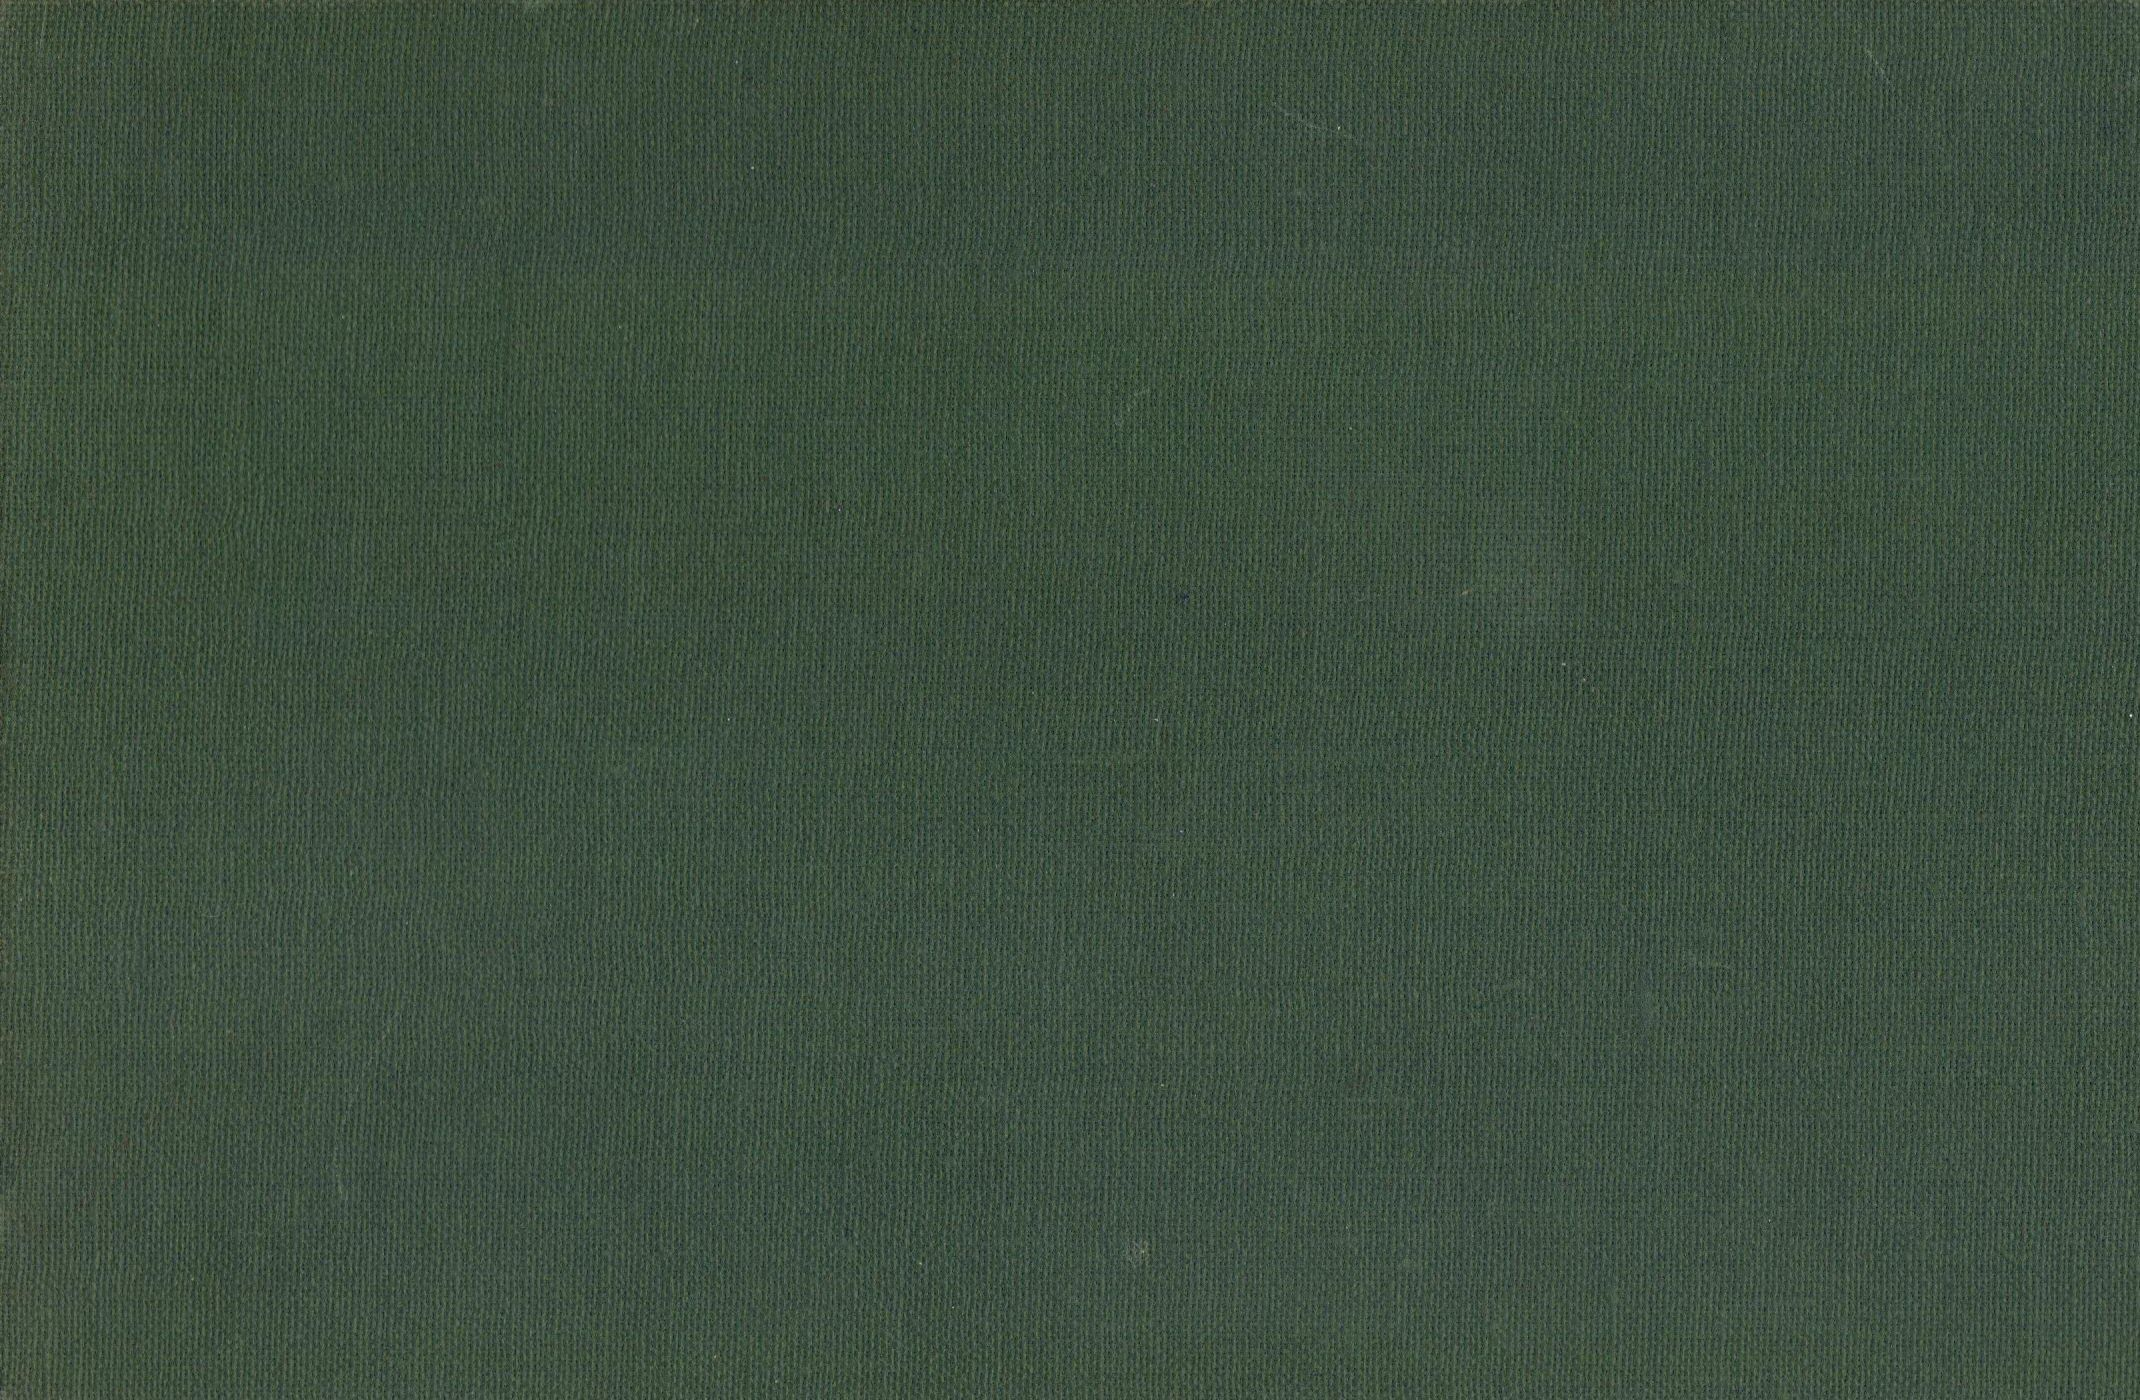 Plain Fabric Texture Dark Green Material Pinterest